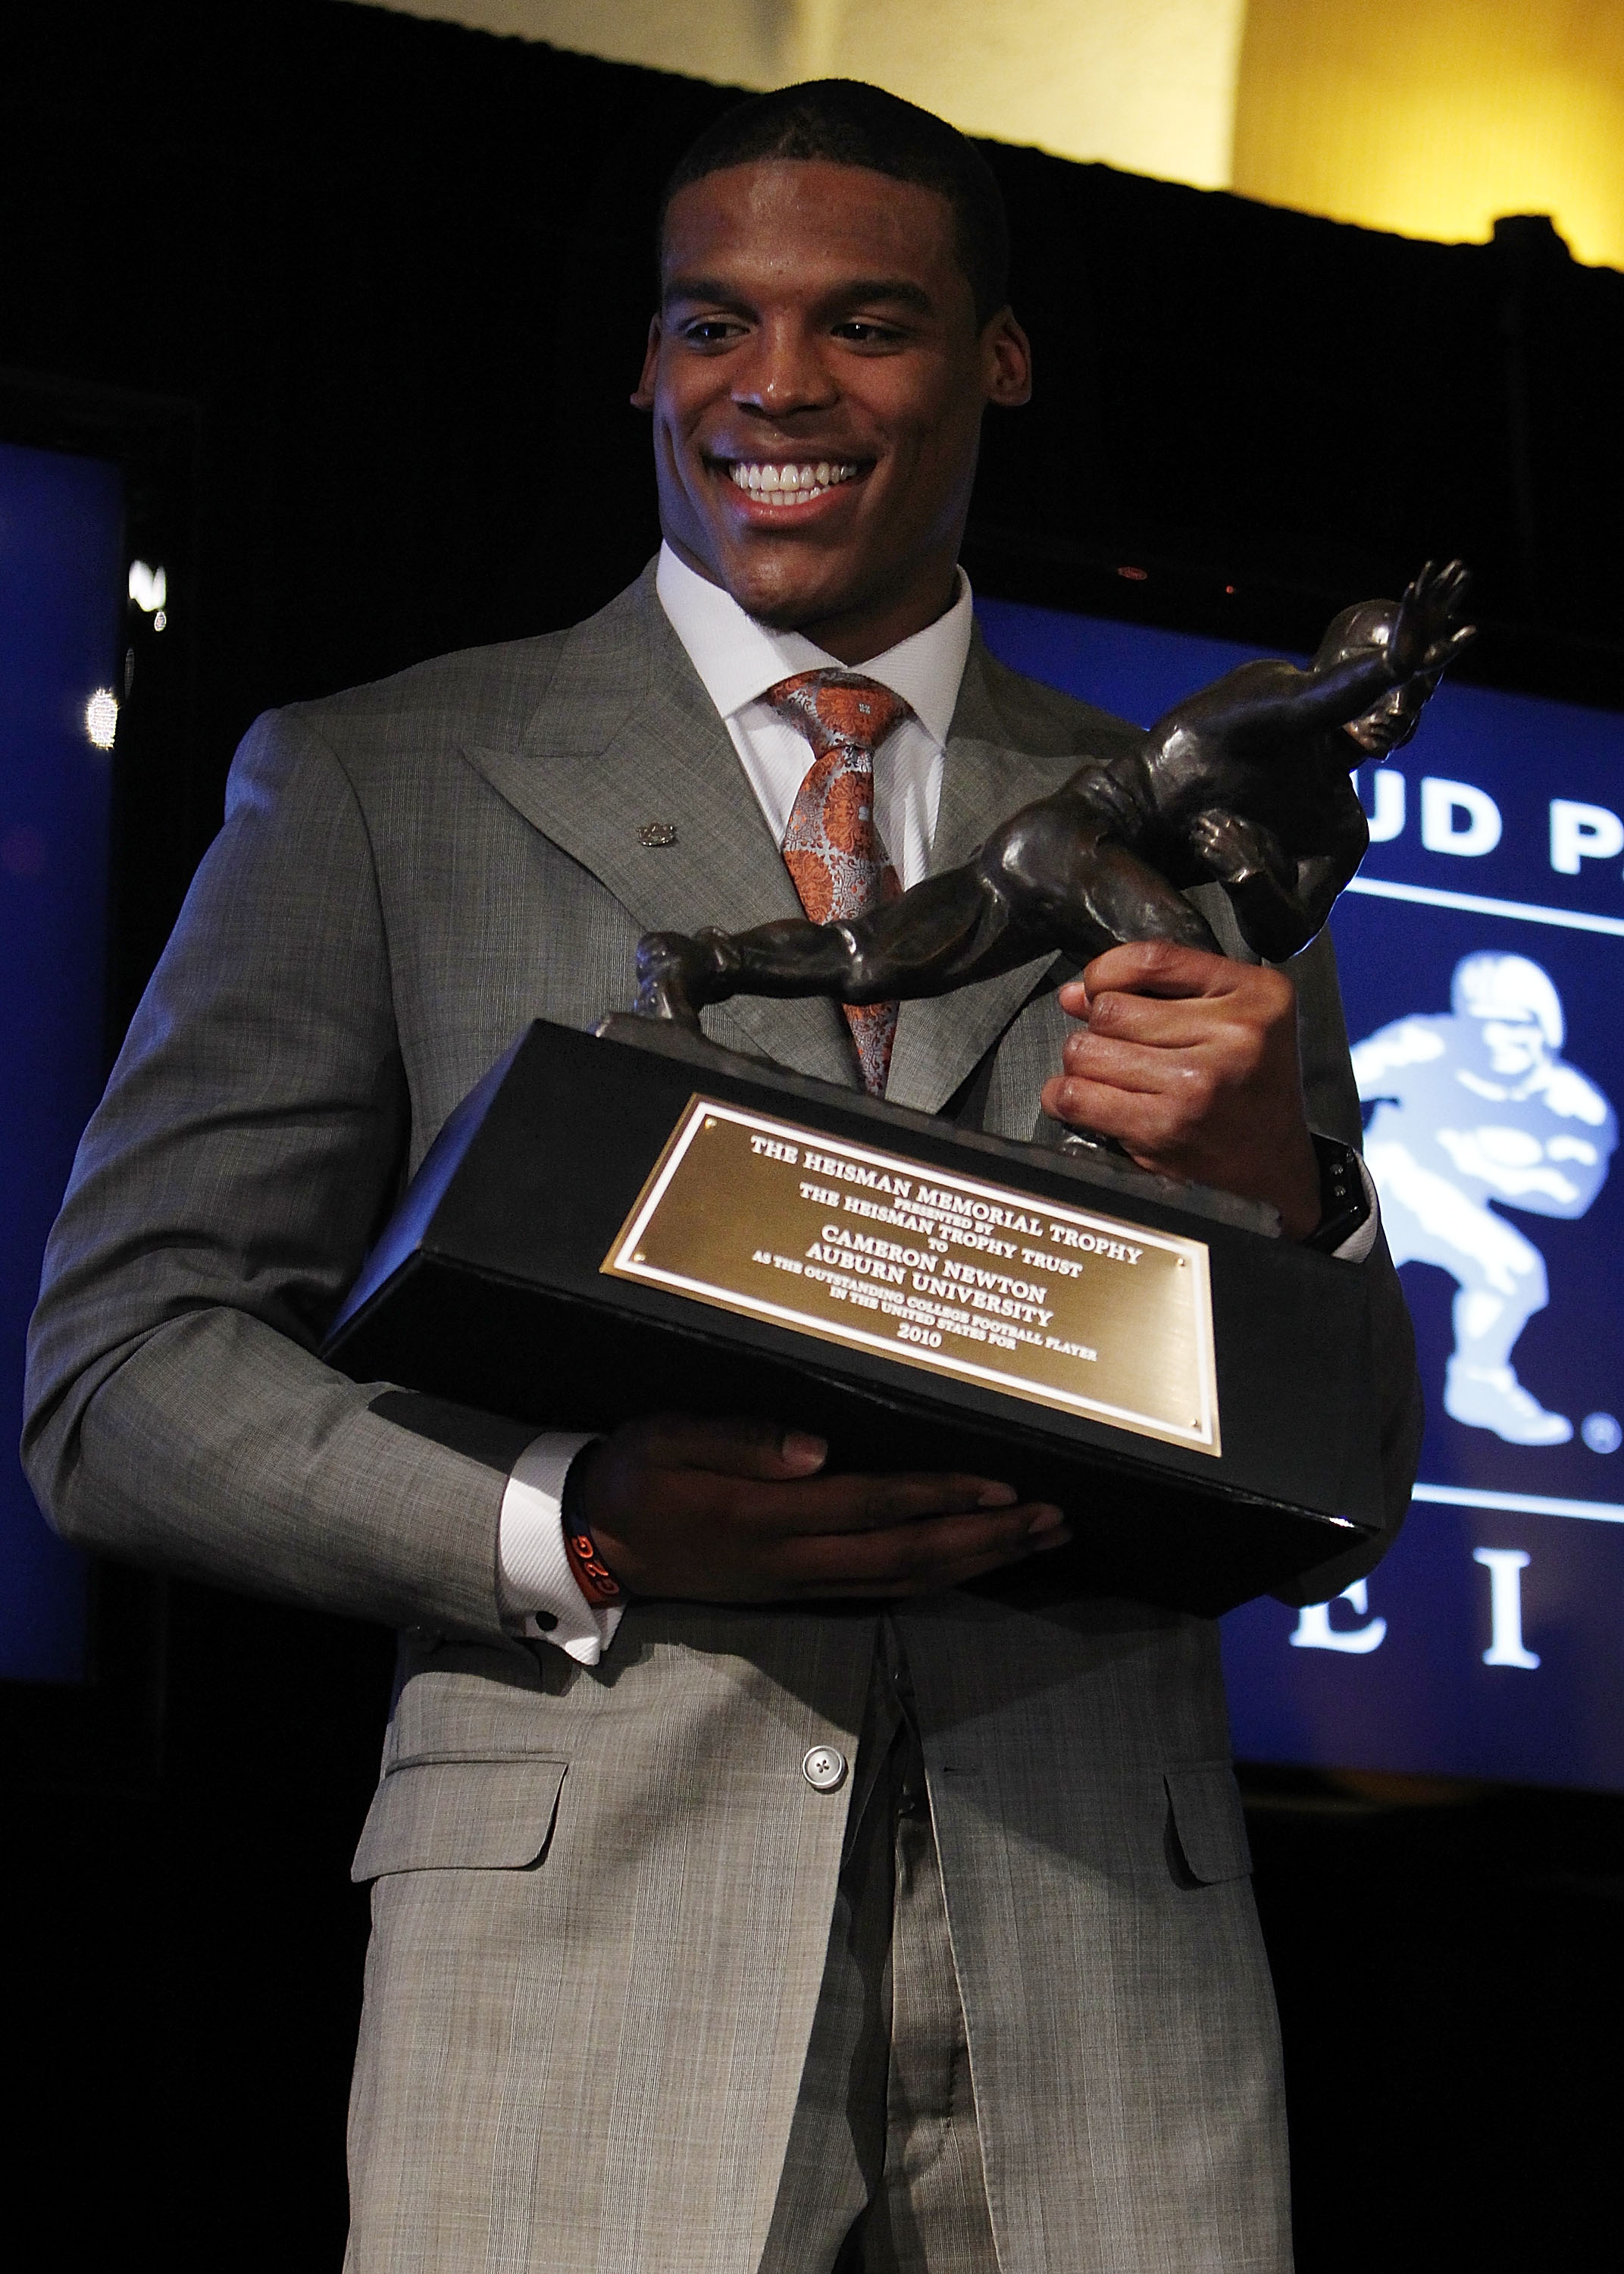 Heisman Trophy 2010  Why Cam Newton Investigation Forever Taints His ... d51070202